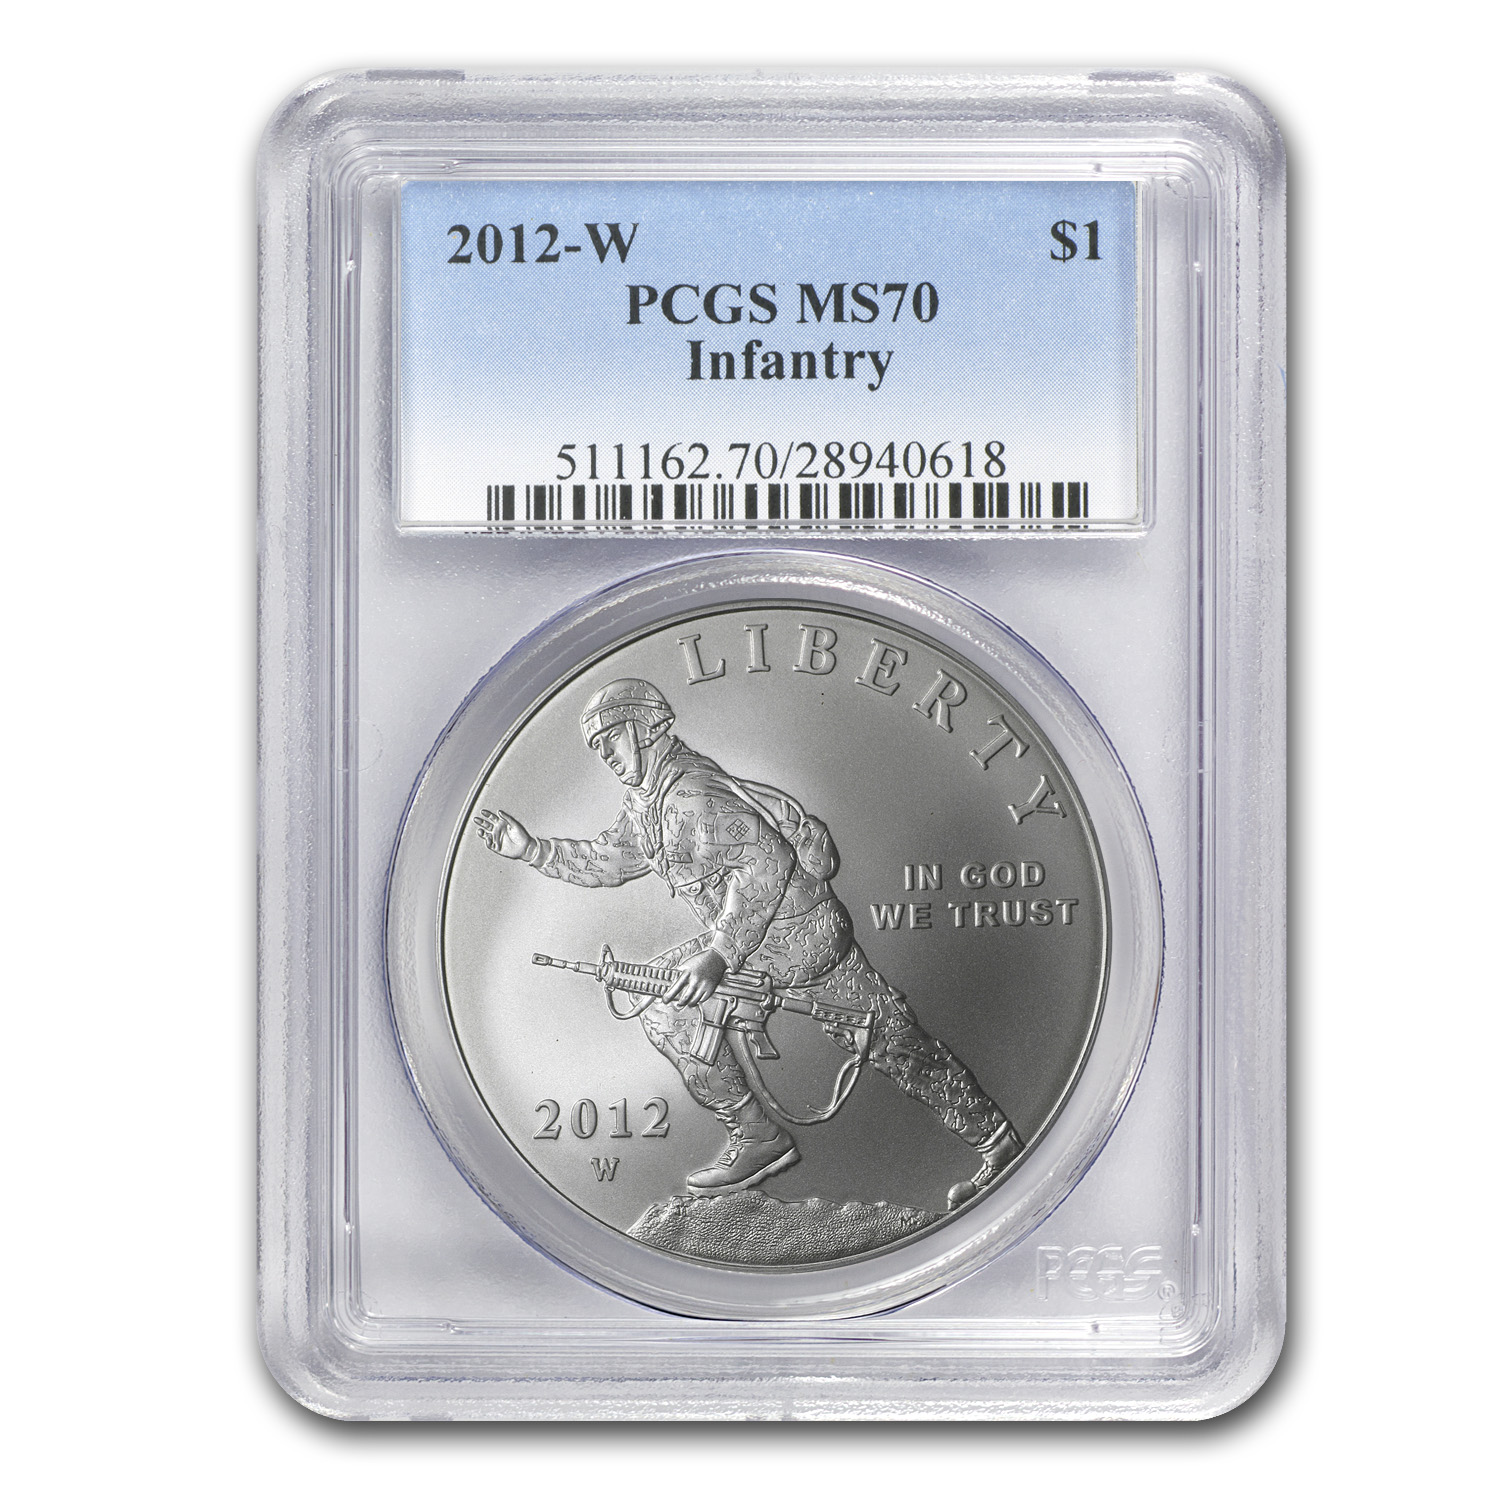 2012-W Infantry Soldier $1 Silver Commemorative MS-70 PCGS